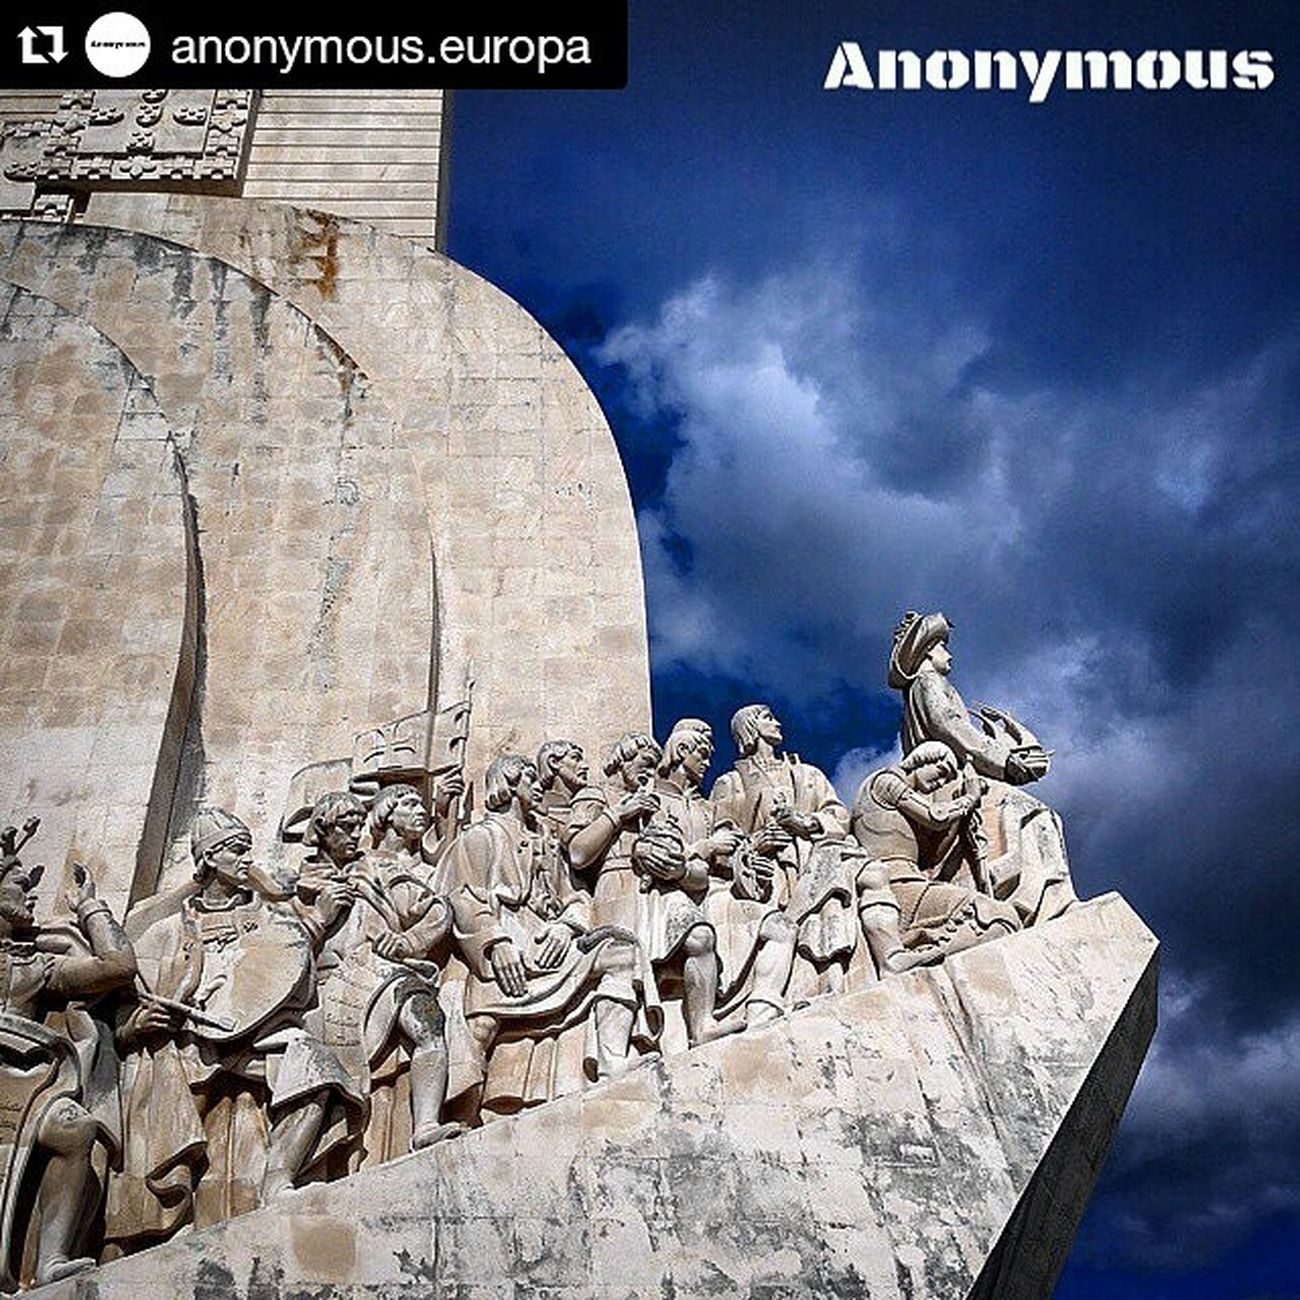 Thanks @anonymous.europa Repost ・・・ Take a moment to say congrats to this photographer, featured for this capture that is full of character! _____________________________ 🎭 ANONYMOUS IGERS EUROPA 🎭 Congrats @bmsanto Great Shot! Feel free to repost your feature in your gallery😊 _____________________________ Let's grow together! Let's play! anonymous.igers@gmail.com TAG Anonymous_EU for features TAG Anonymous_igers_members for be new member HuaweiP8 OMeuHuawei MyHuawei